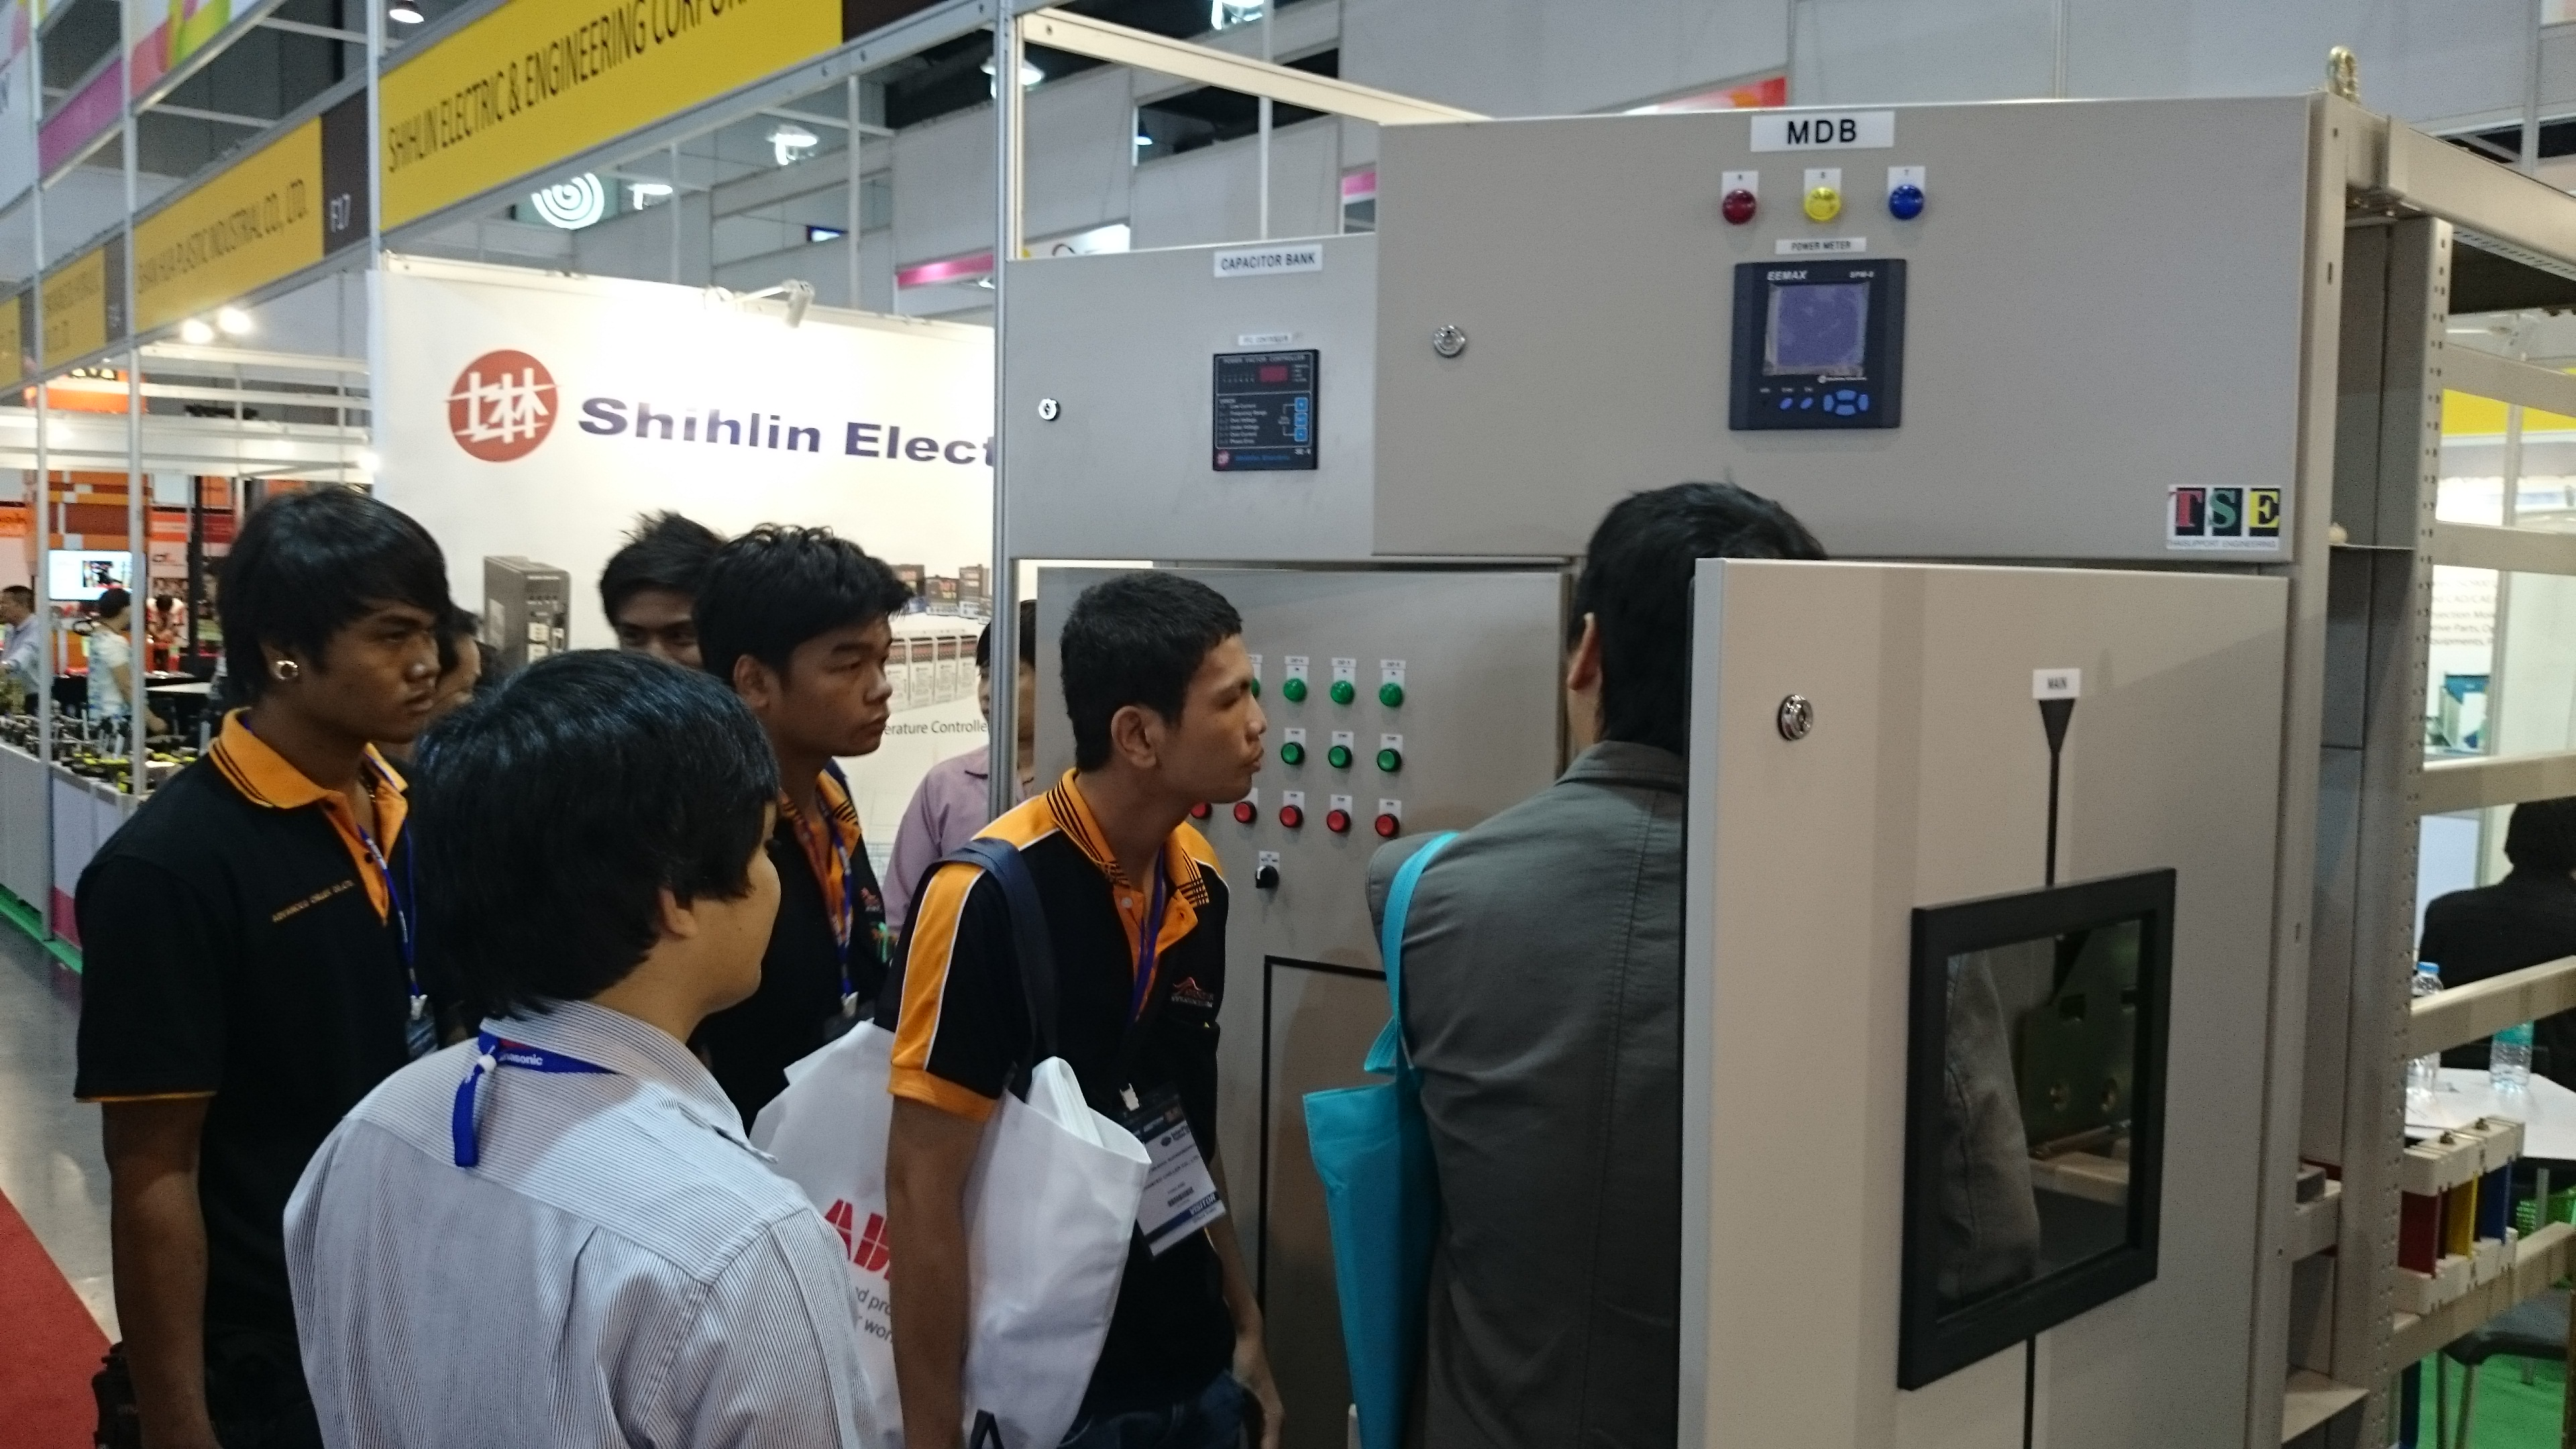 Shihlin Electric stand